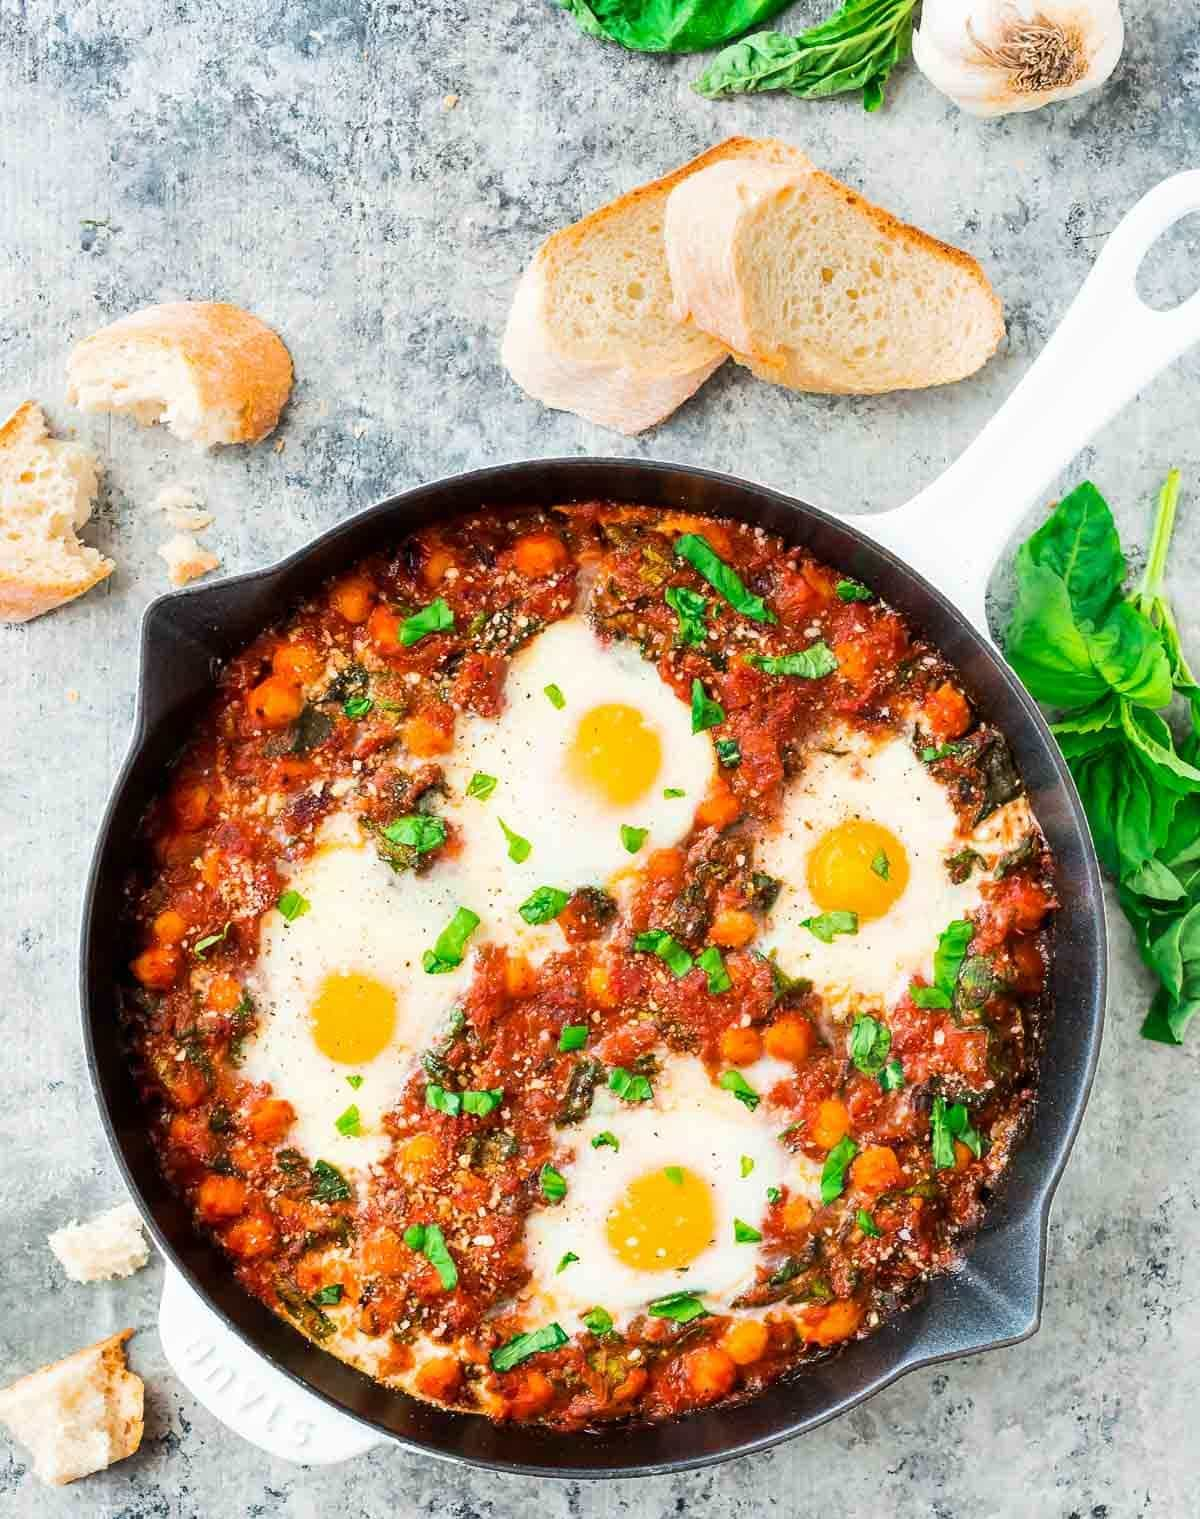 Italian Baked Eggs in Purgatory – Eggs baked in garlic tomato sauce with chickpeas, spinach, Parmesan, and fresh basil.